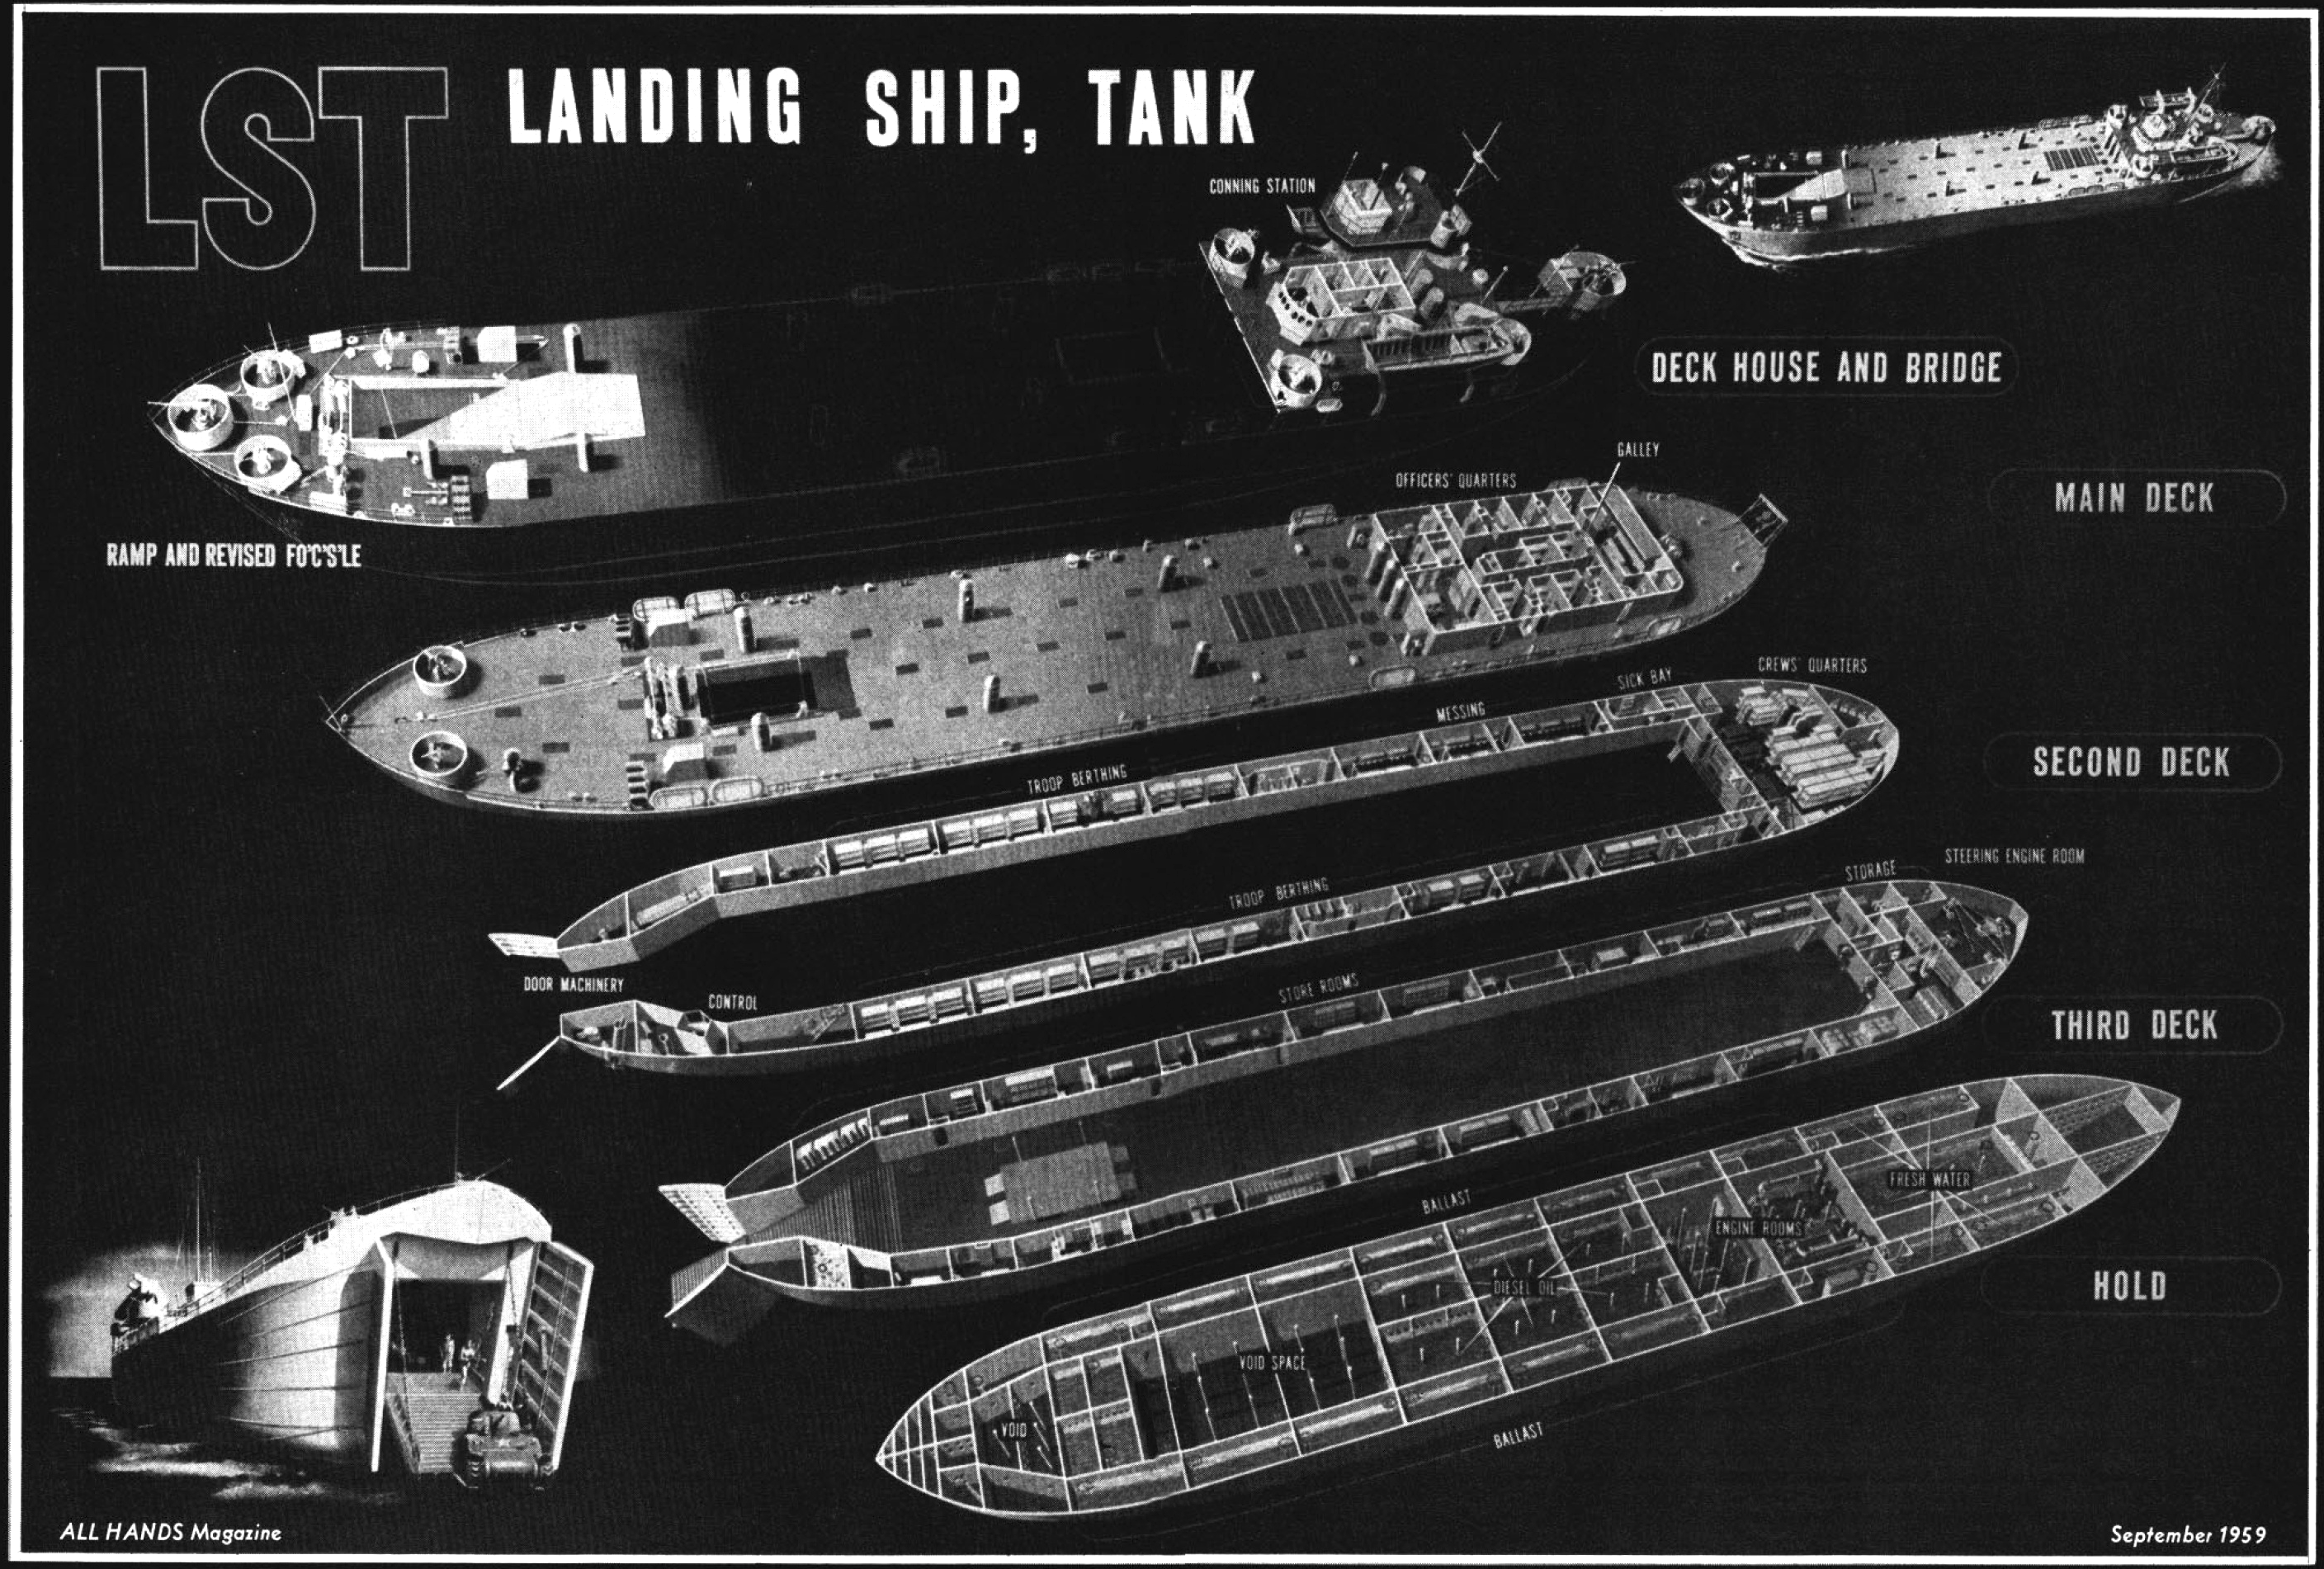 Filetank landing ship technical diagram 1959g wikimedia commons filetank landing ship technical diagram 1959g pooptronica